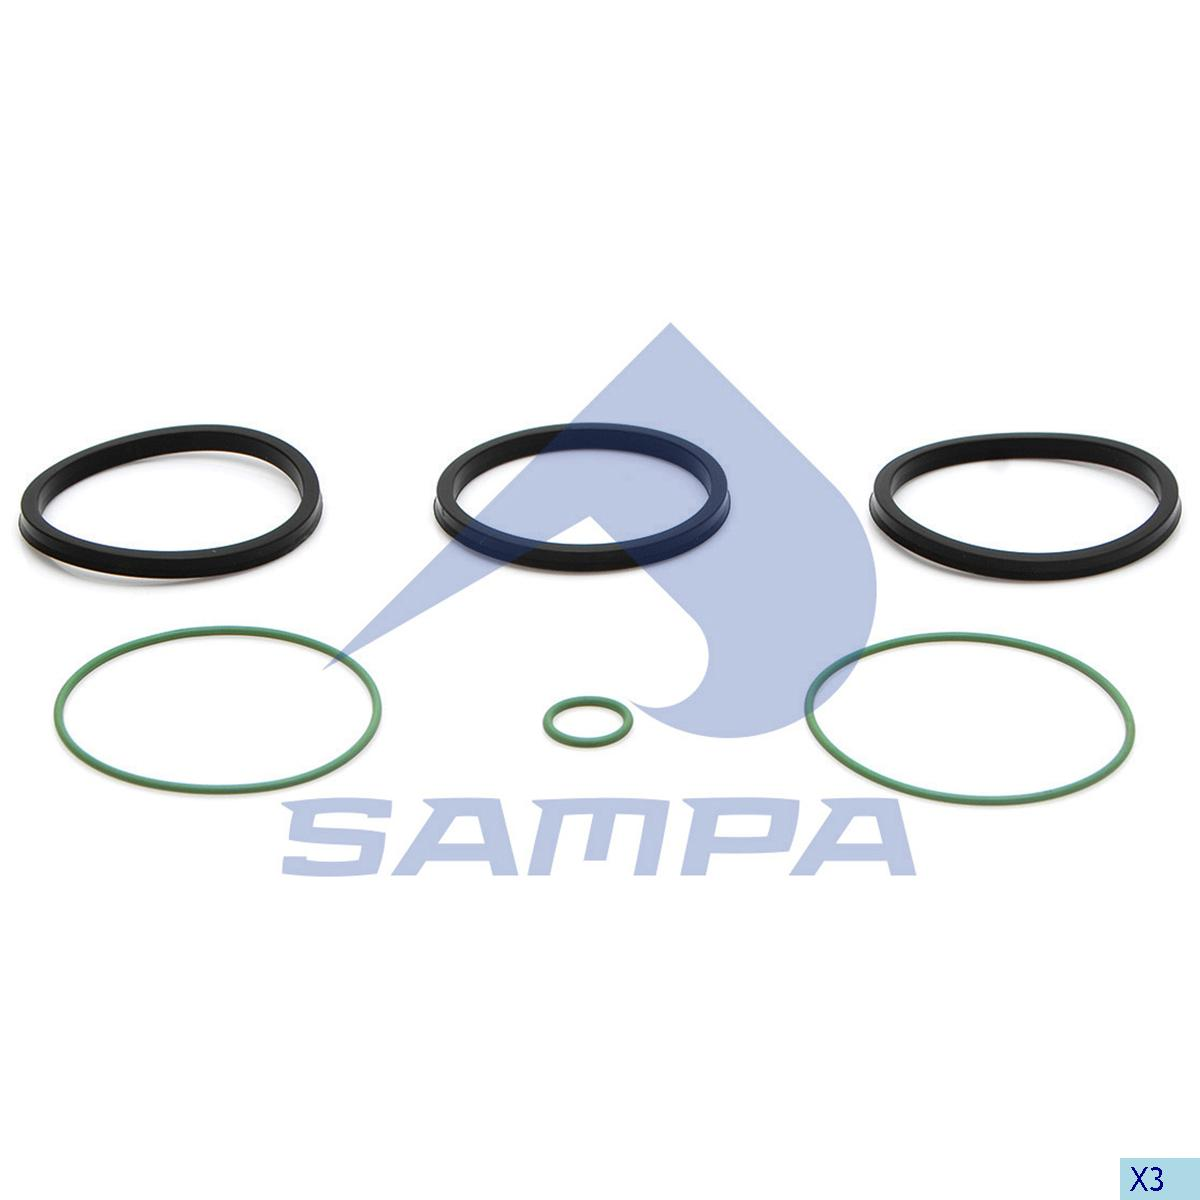 Gasket Kit, Retarder, Scania, Gear Box